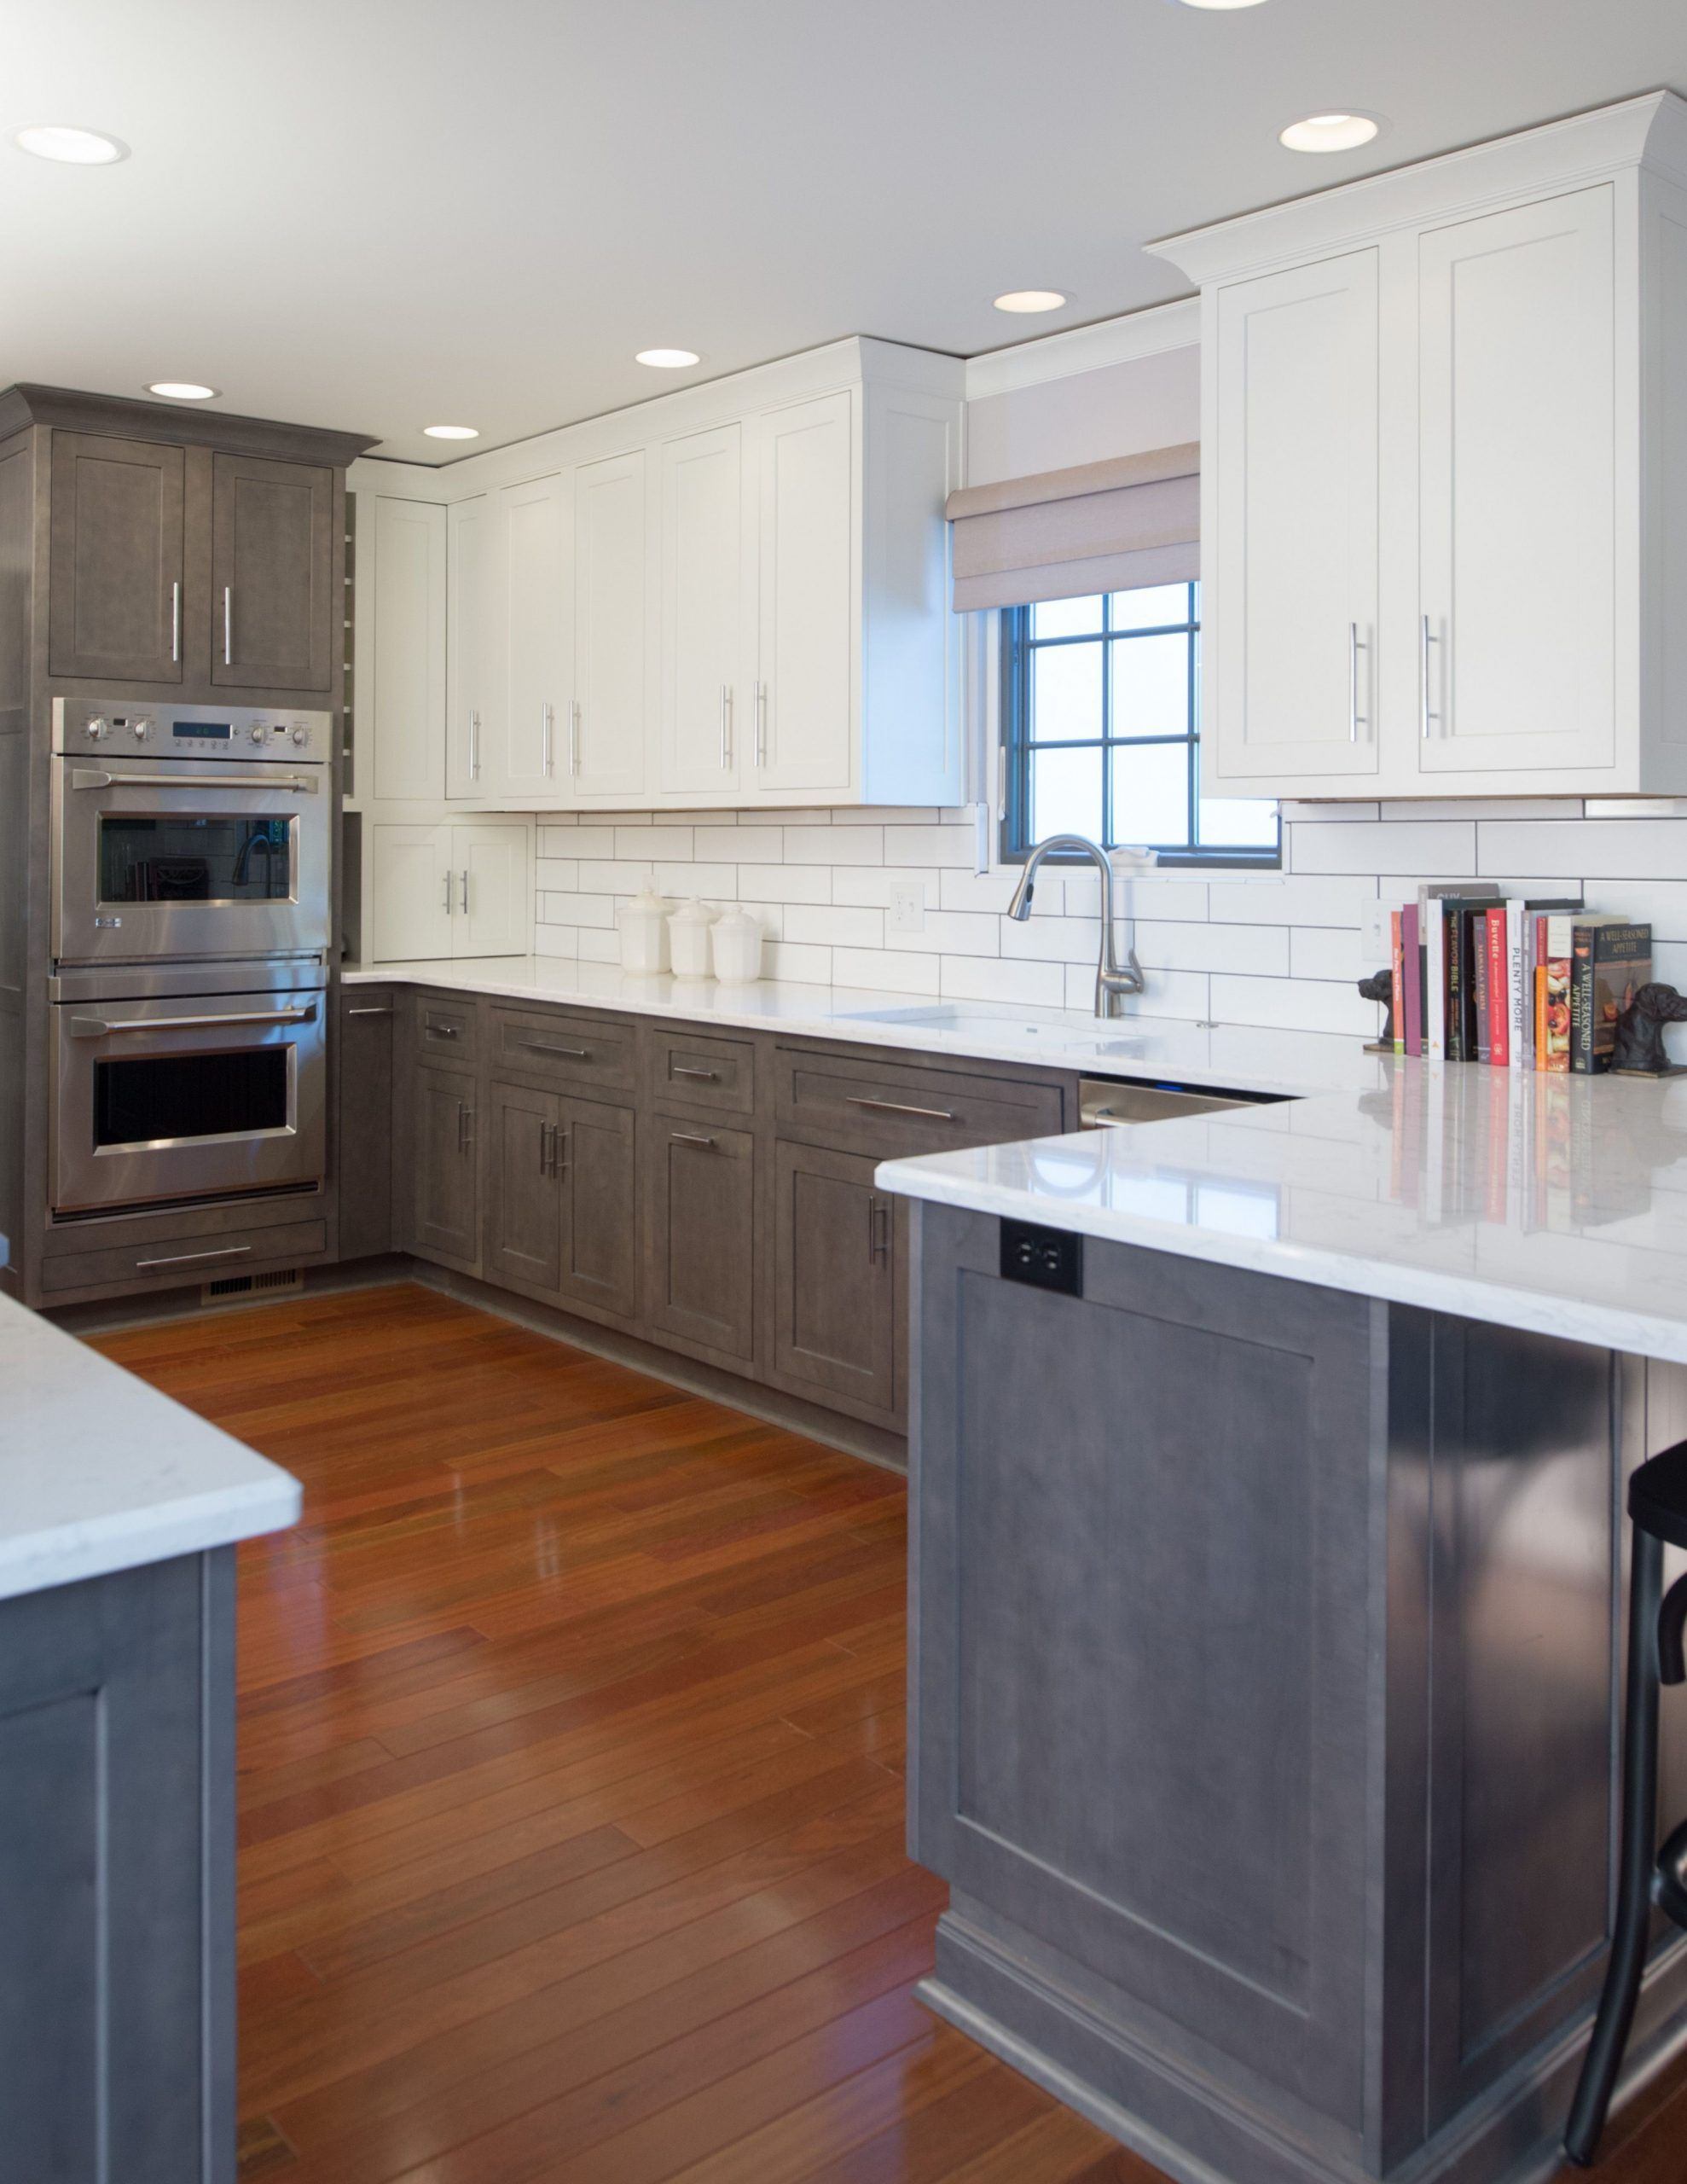 Images Of White Upper Kitchen Cabinets Woth Wood In 2020 Upper Kitchen Cabinets Stained Kitchen Cabinets Upper Cabinets